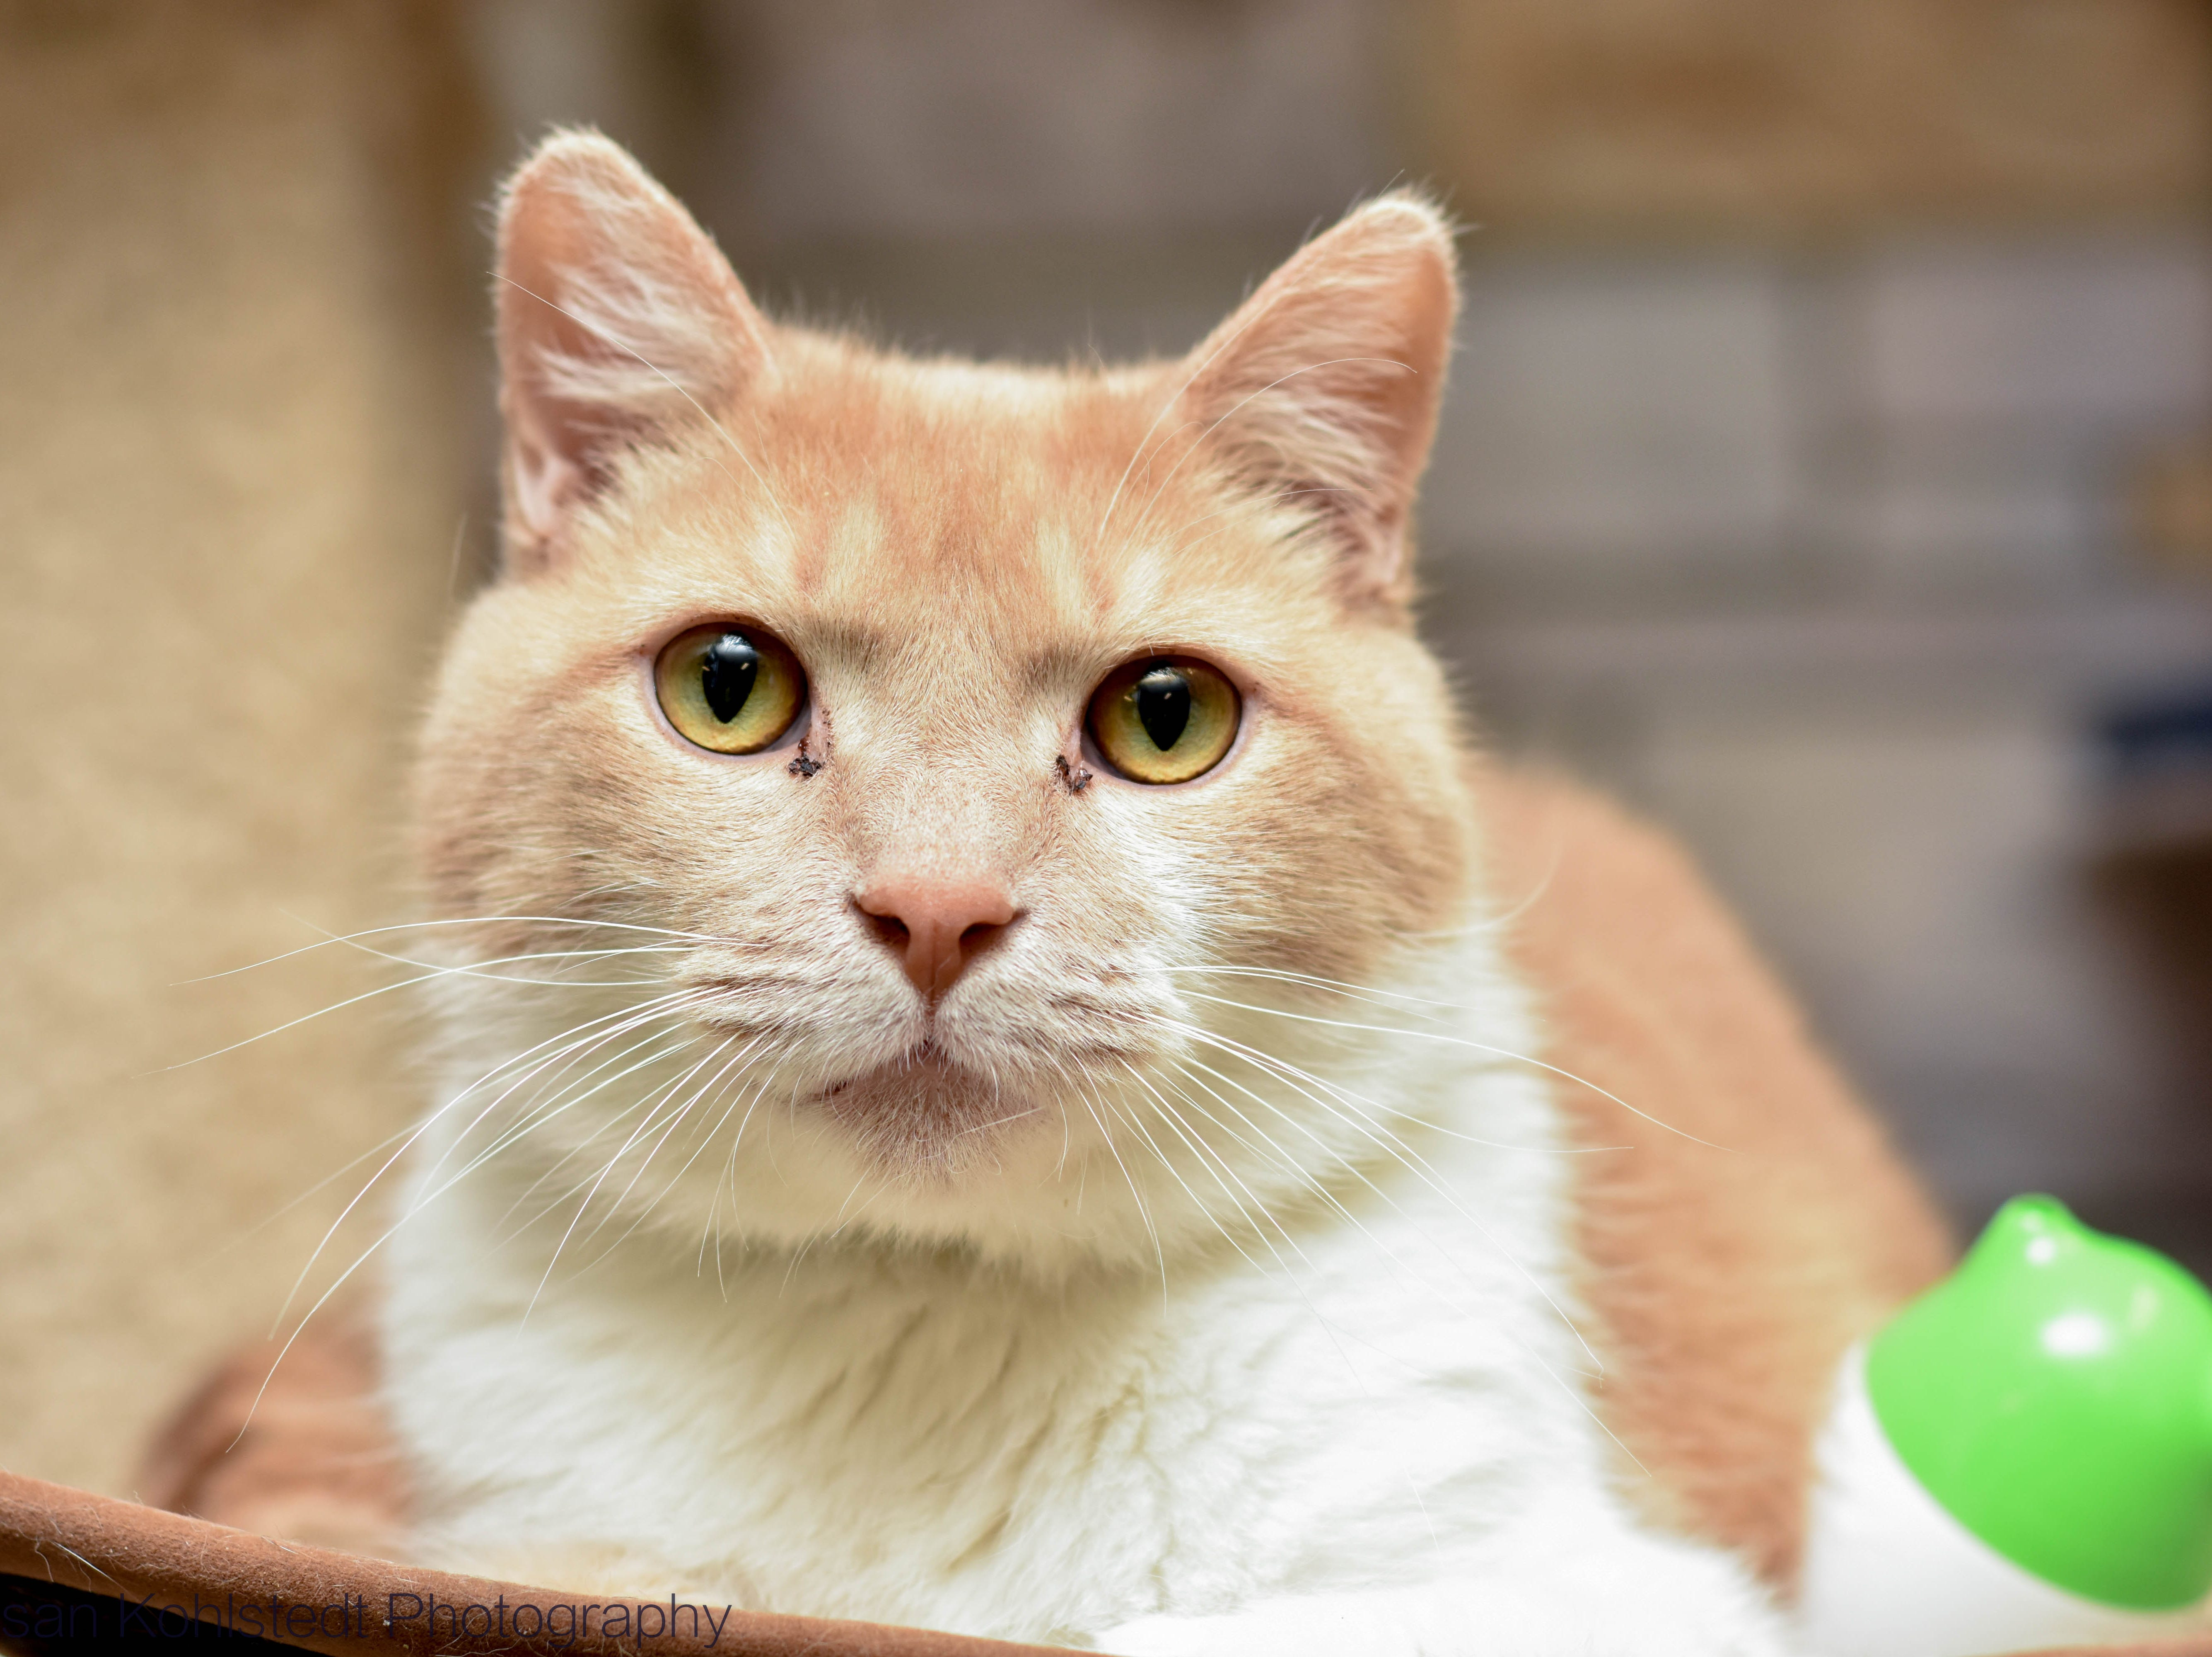 Tiger is a big guy at 14 lbs. He loves to lie on his tall cat towers and relax. He is no-drama and gets along with everyone. Meet Tiger and all our adoptable animals at HumaneSocietyTennnessee.org!